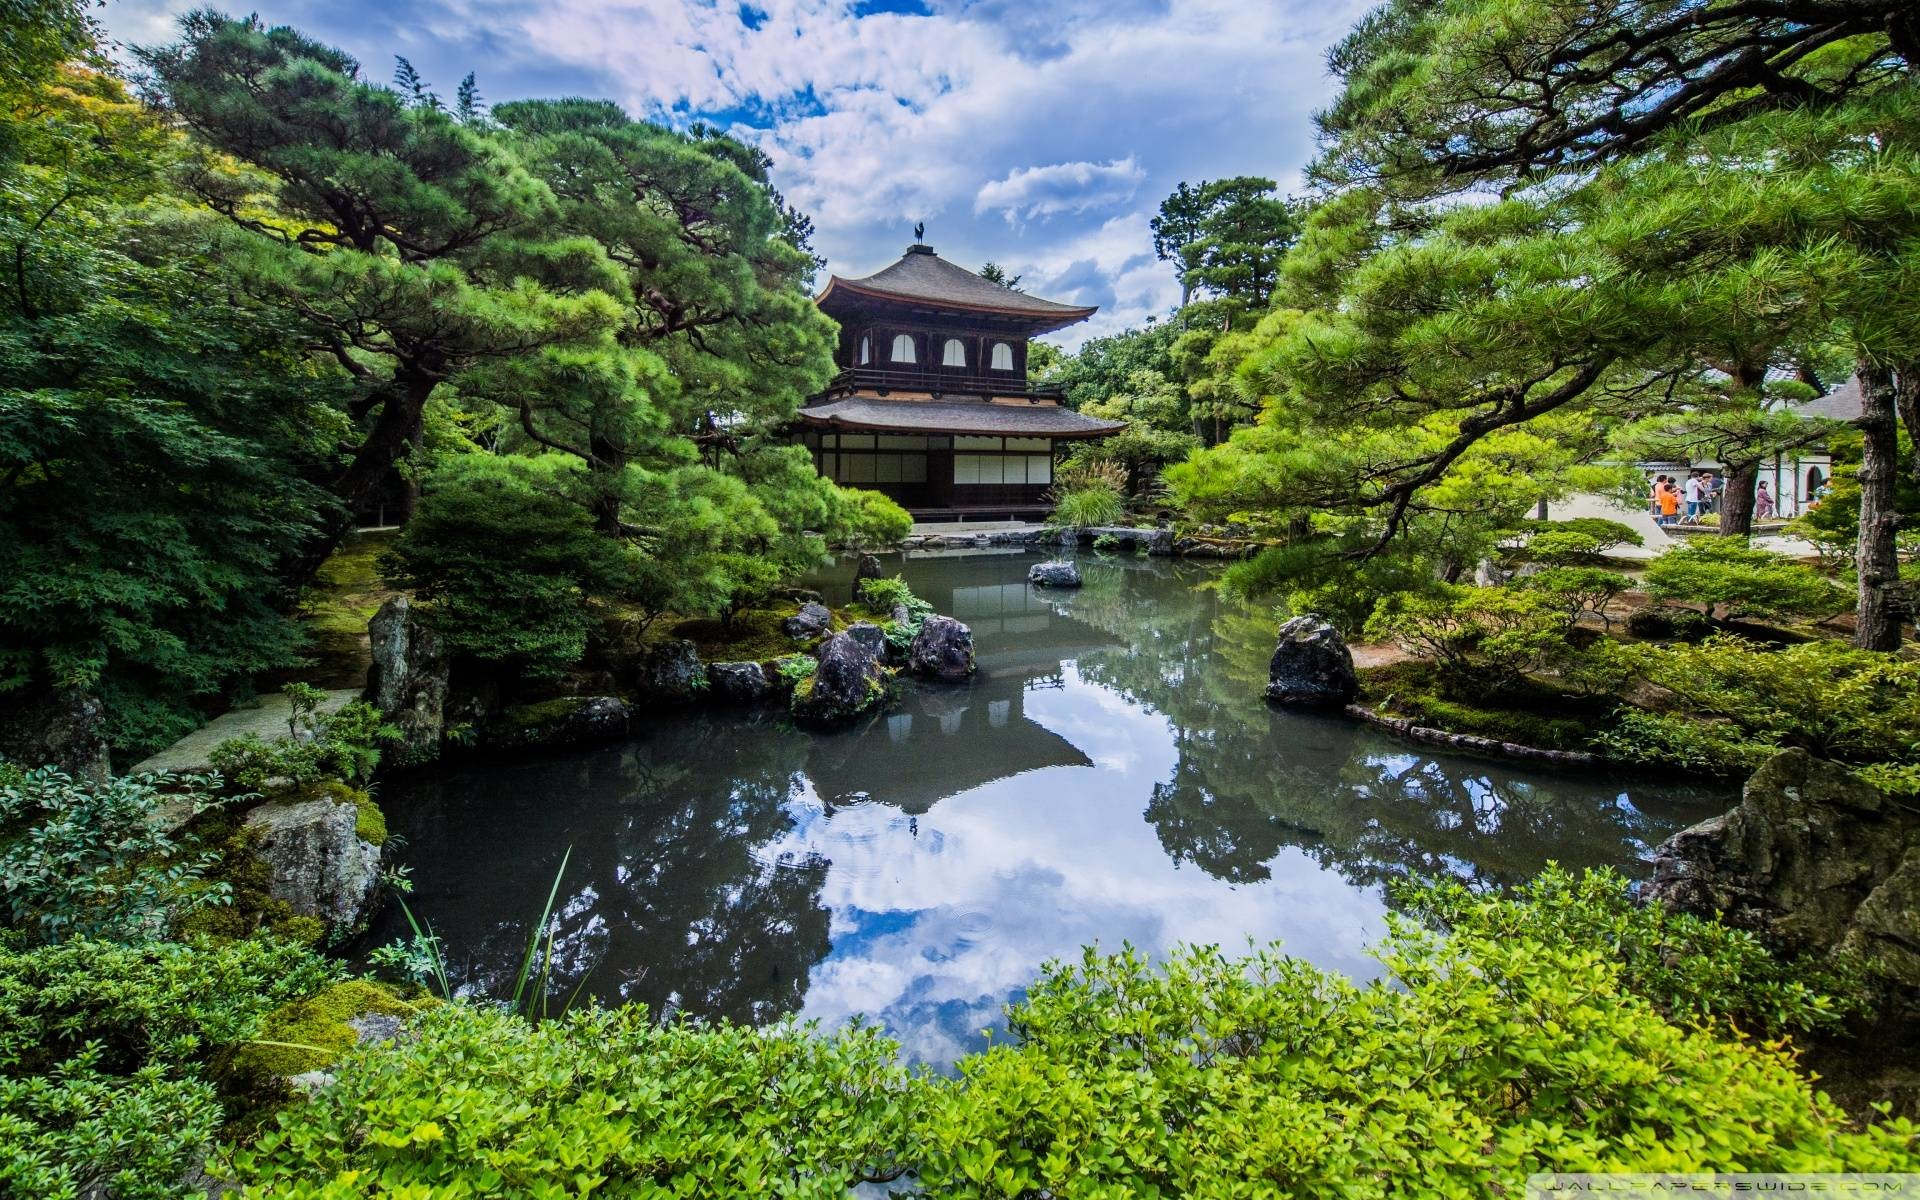 The Best Anime Wallpaper Japanese Zen Garden Wallpaper 56 Images